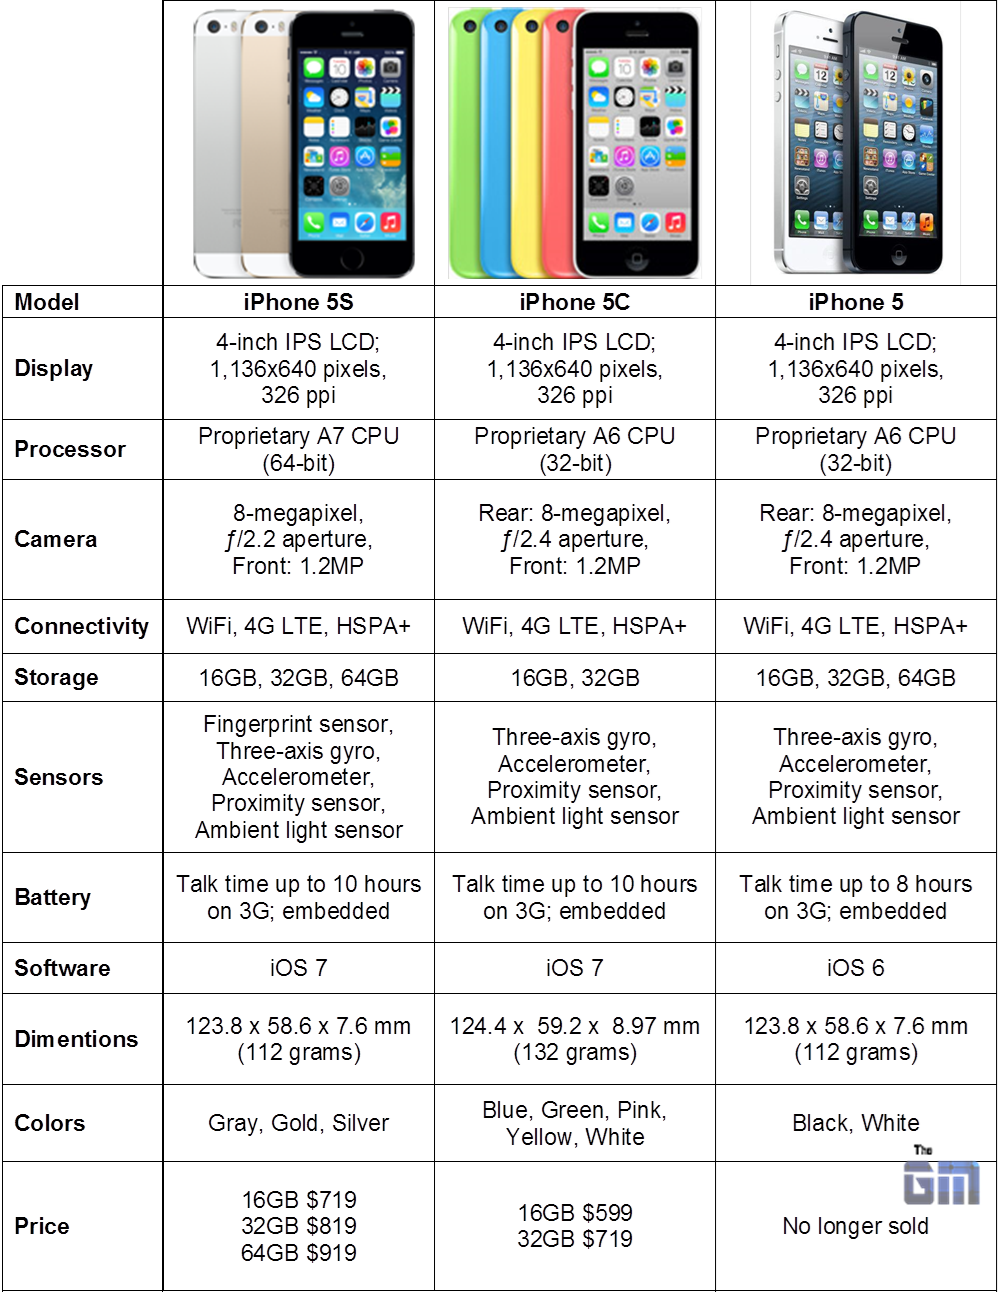 iphone 5s vs 5c specs apple iphone 5s vs iphone 5c vs iphone 5 specs 17516